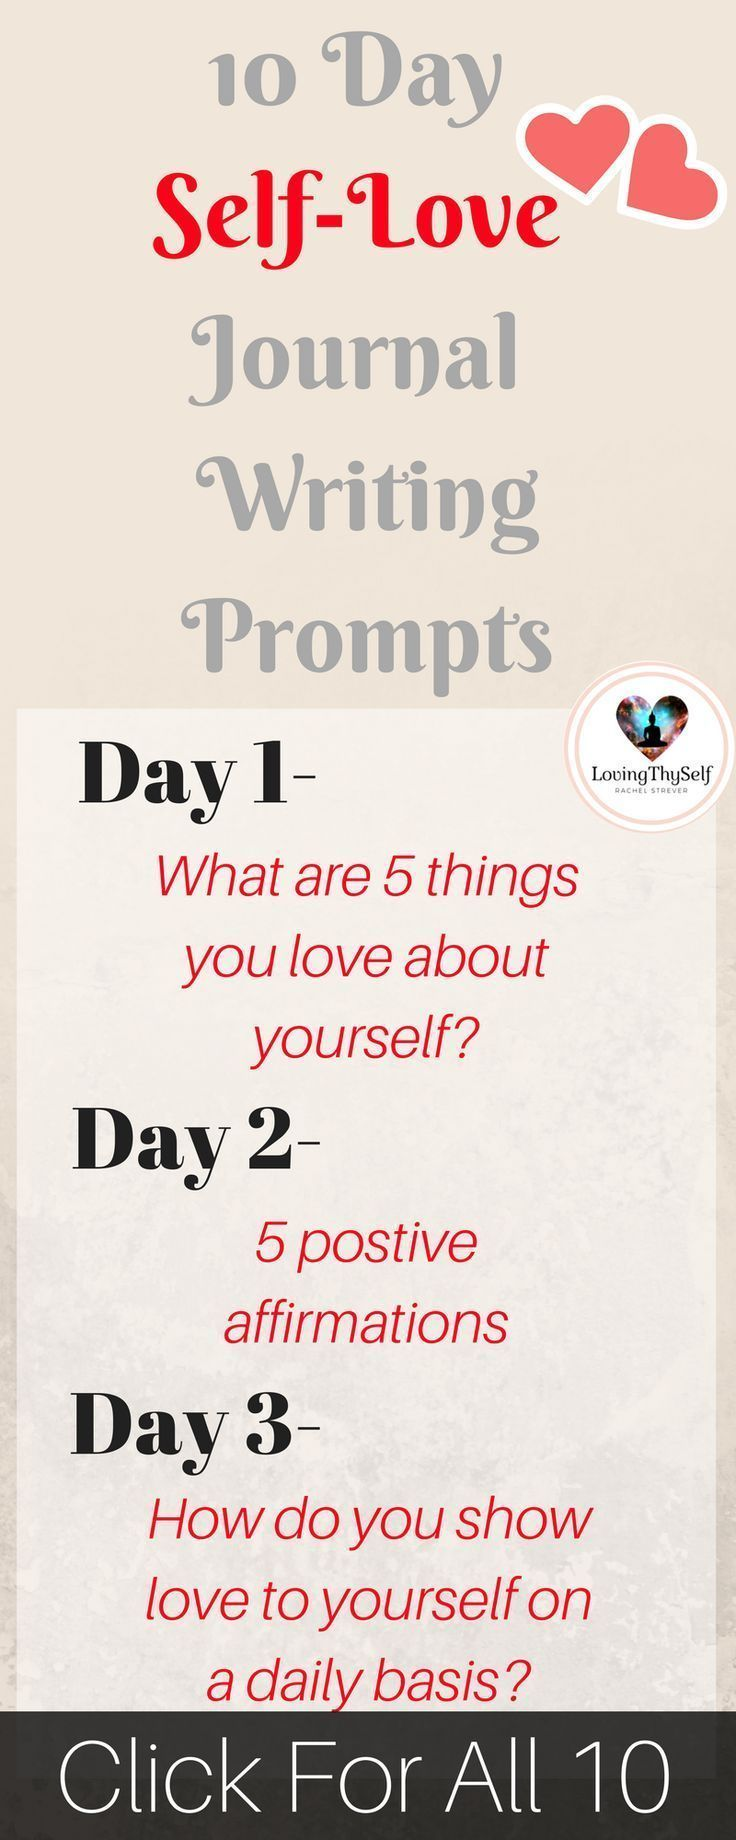 10 day self love journal prompts to ignite your best self cuppa 10 day self love journal prompts to ignite your best self cuppa optimism pinterest journal writing prompts prompts and journal solutioingenieria Gallery